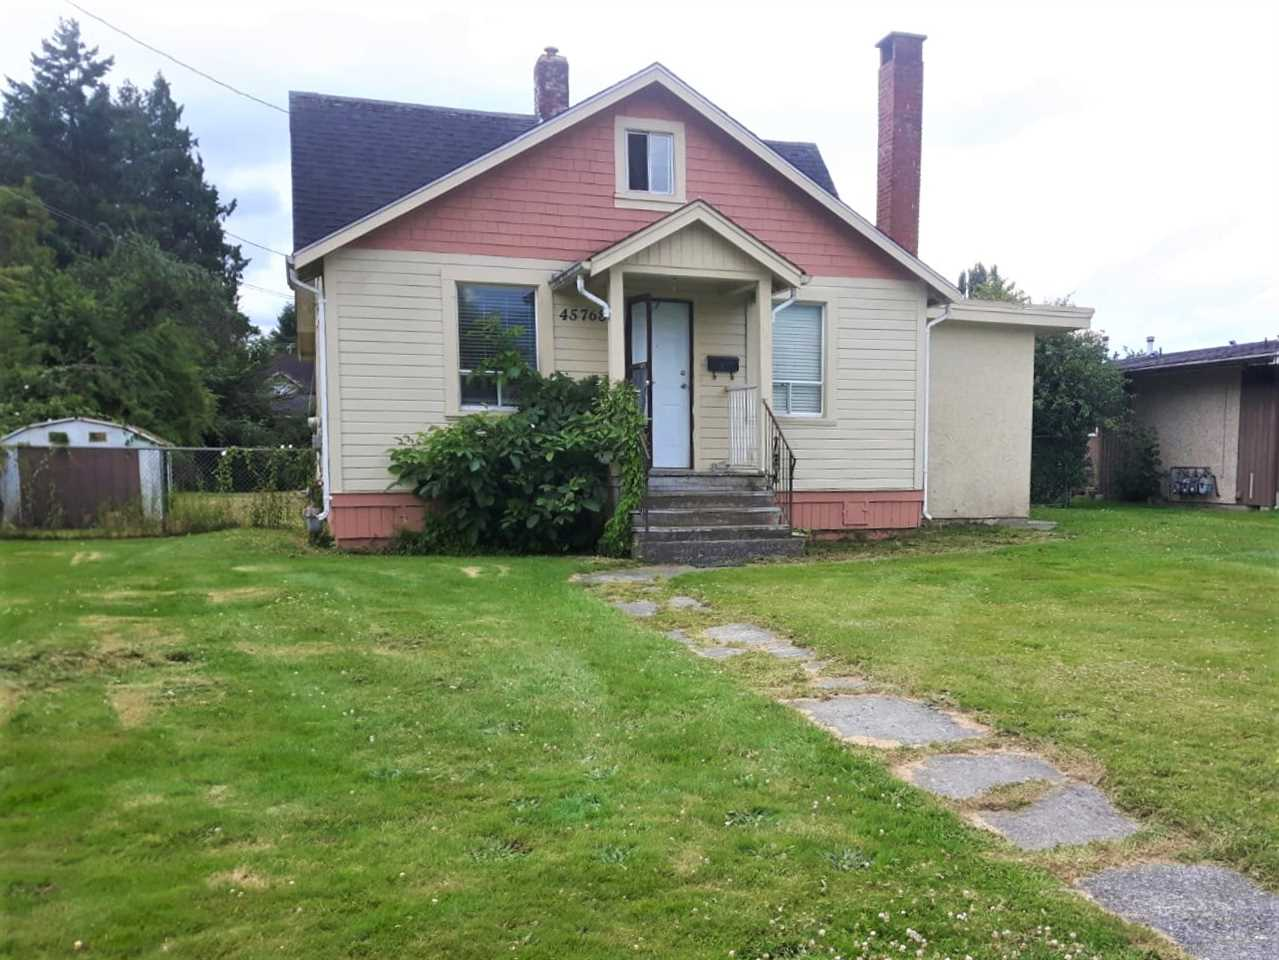 Development potential! Check out the potential of this 72/ x 173' (.29 acre lot) level lot, in an area of redevelopment. All utility services available. 1121 sf 2 bdrm + loft home currently tenanted. Existing home of limited value. Great quiet location close to shopping, schools, recreation, walking & biking trails.. Call today for details and to book your viewing.